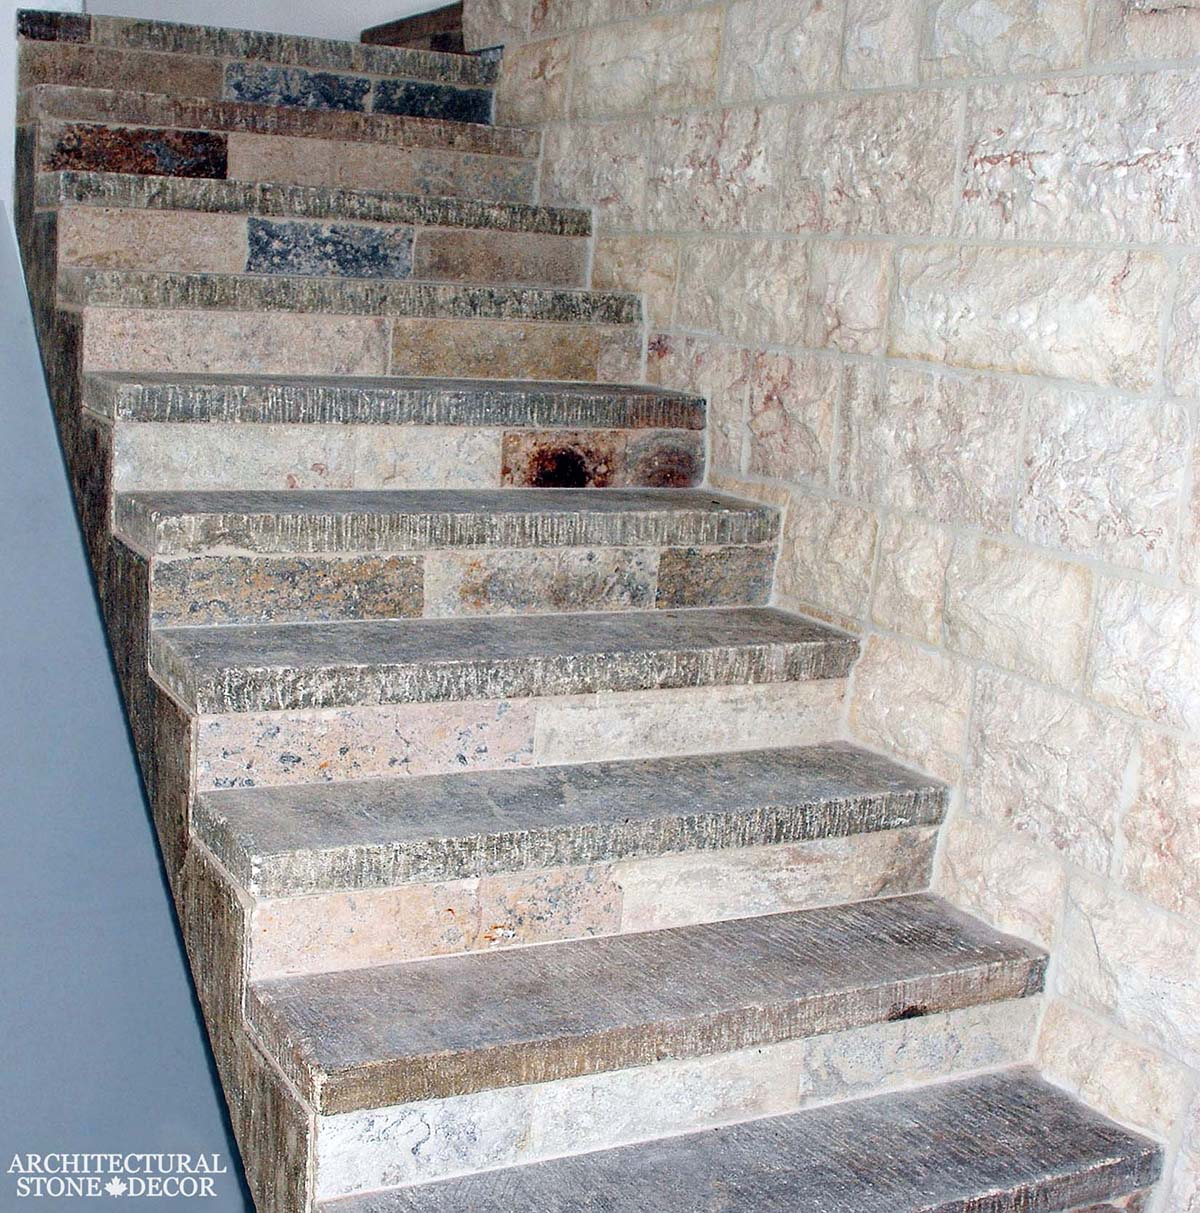 Artistic Stairs Canada: Stairway To Your Own Heaven